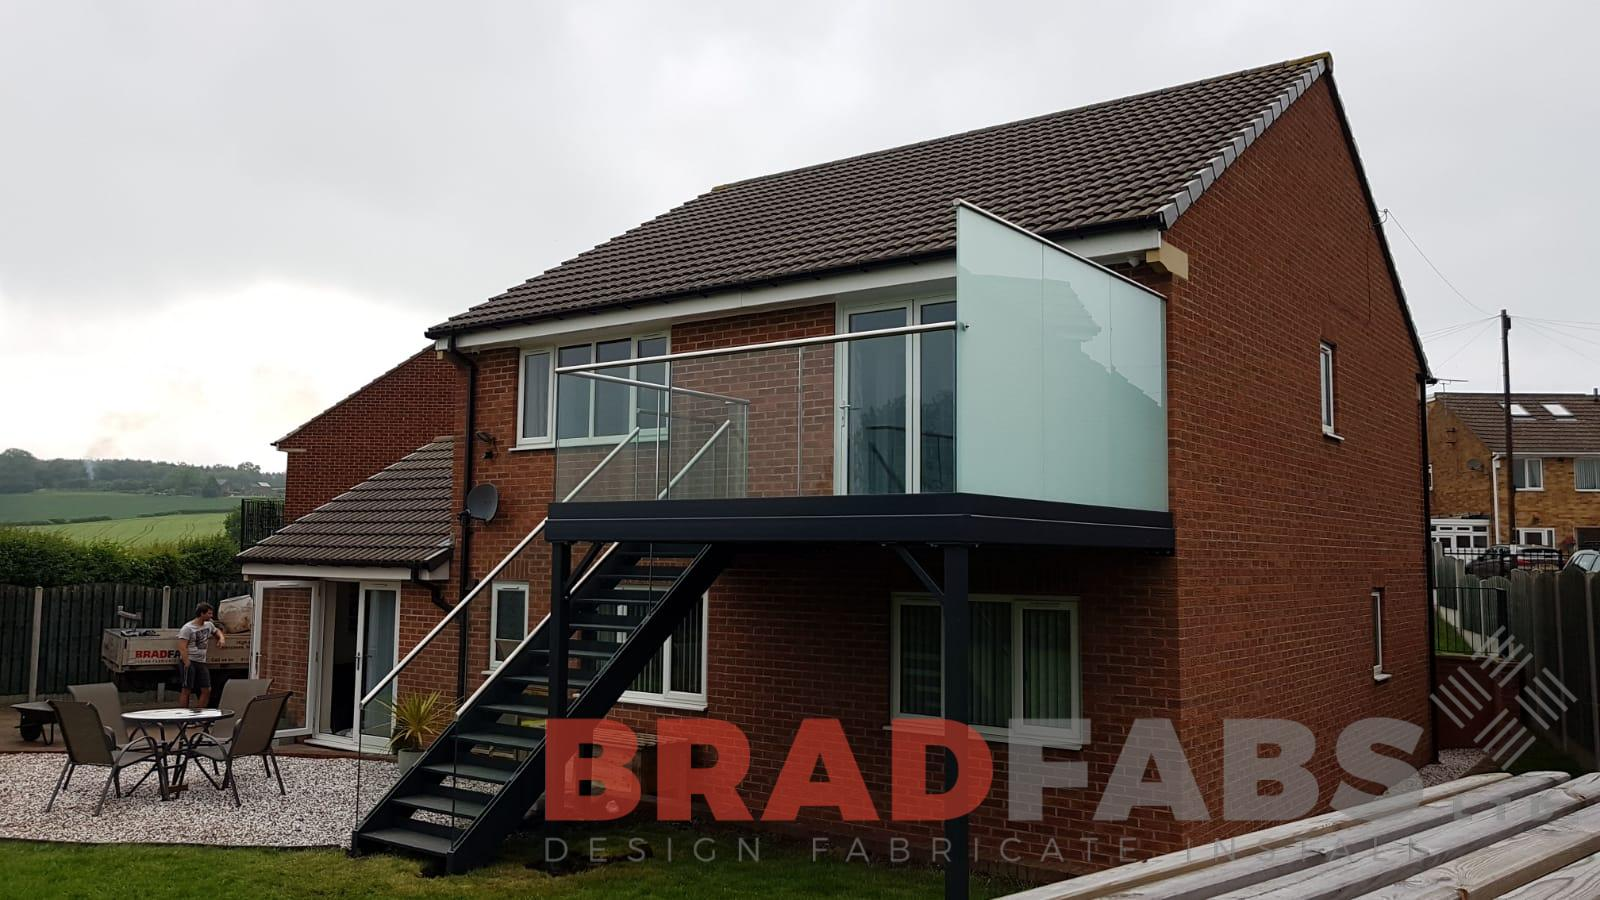 Stunning privacy glass balcony and staircase design, supplied and installed by Bradfabs